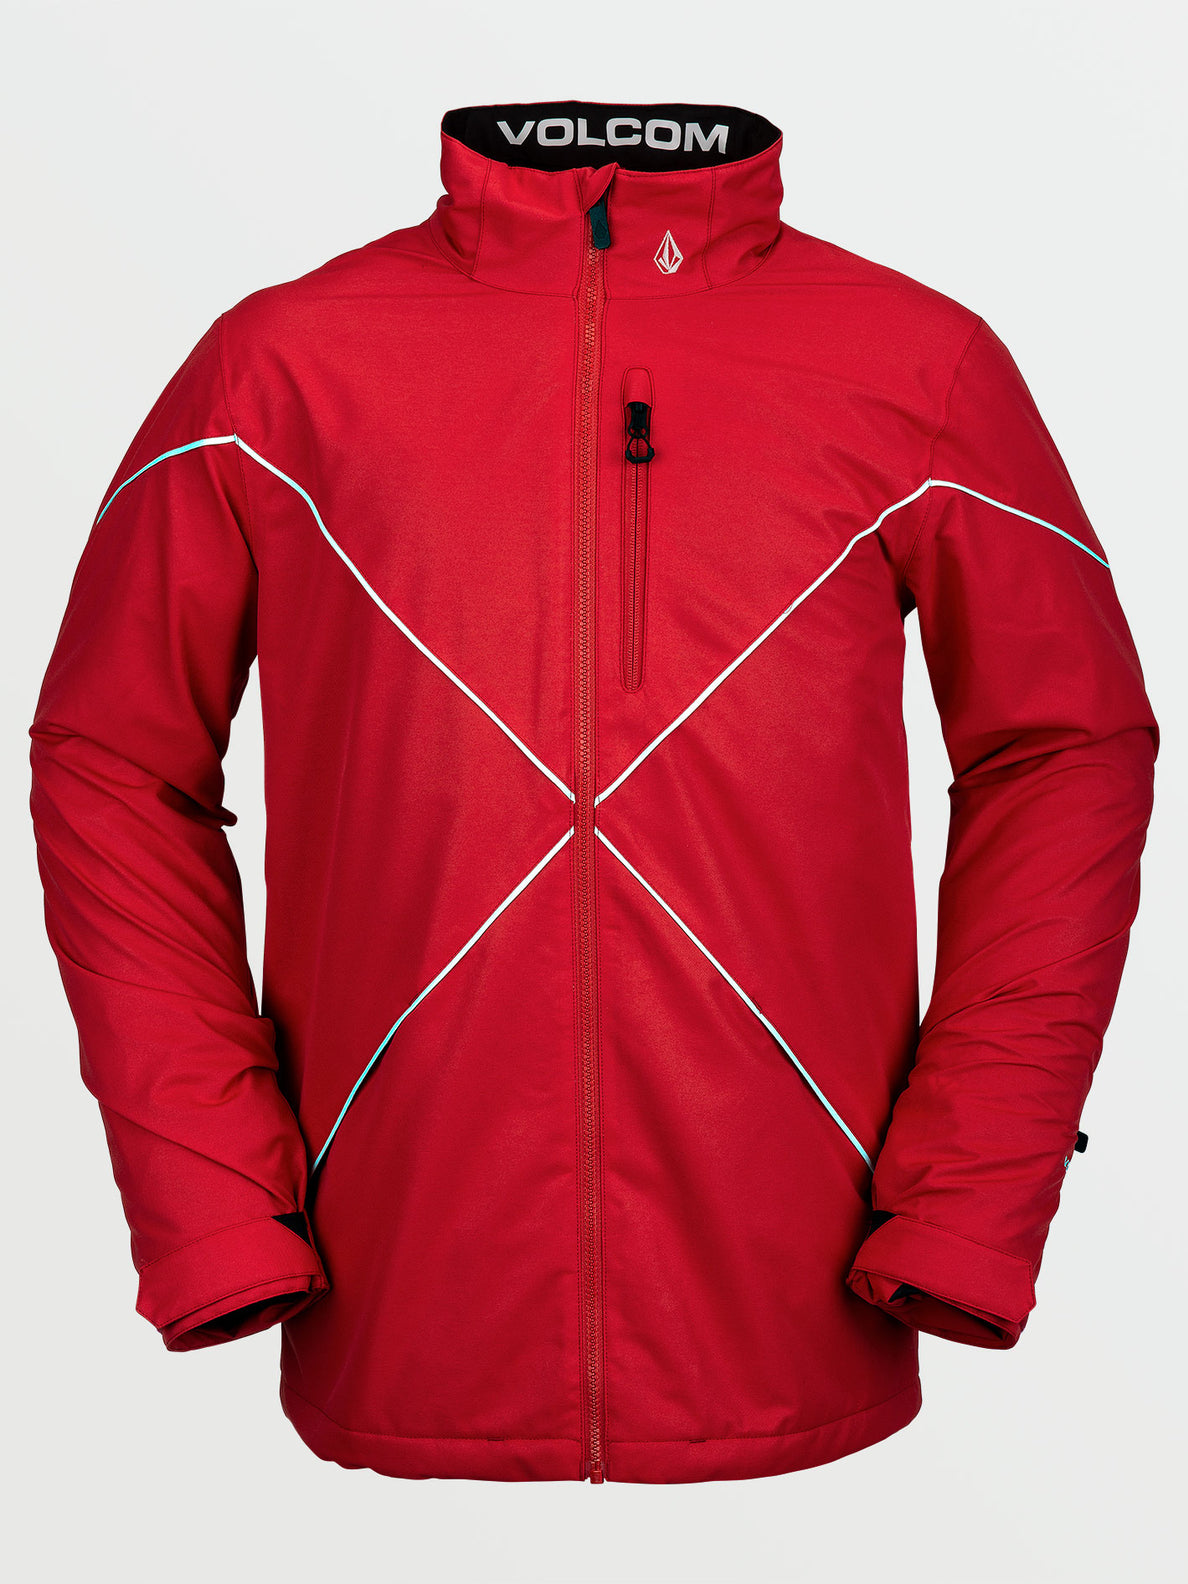 NO HOOD X JACKET - RED (G0652114_RED) [F]